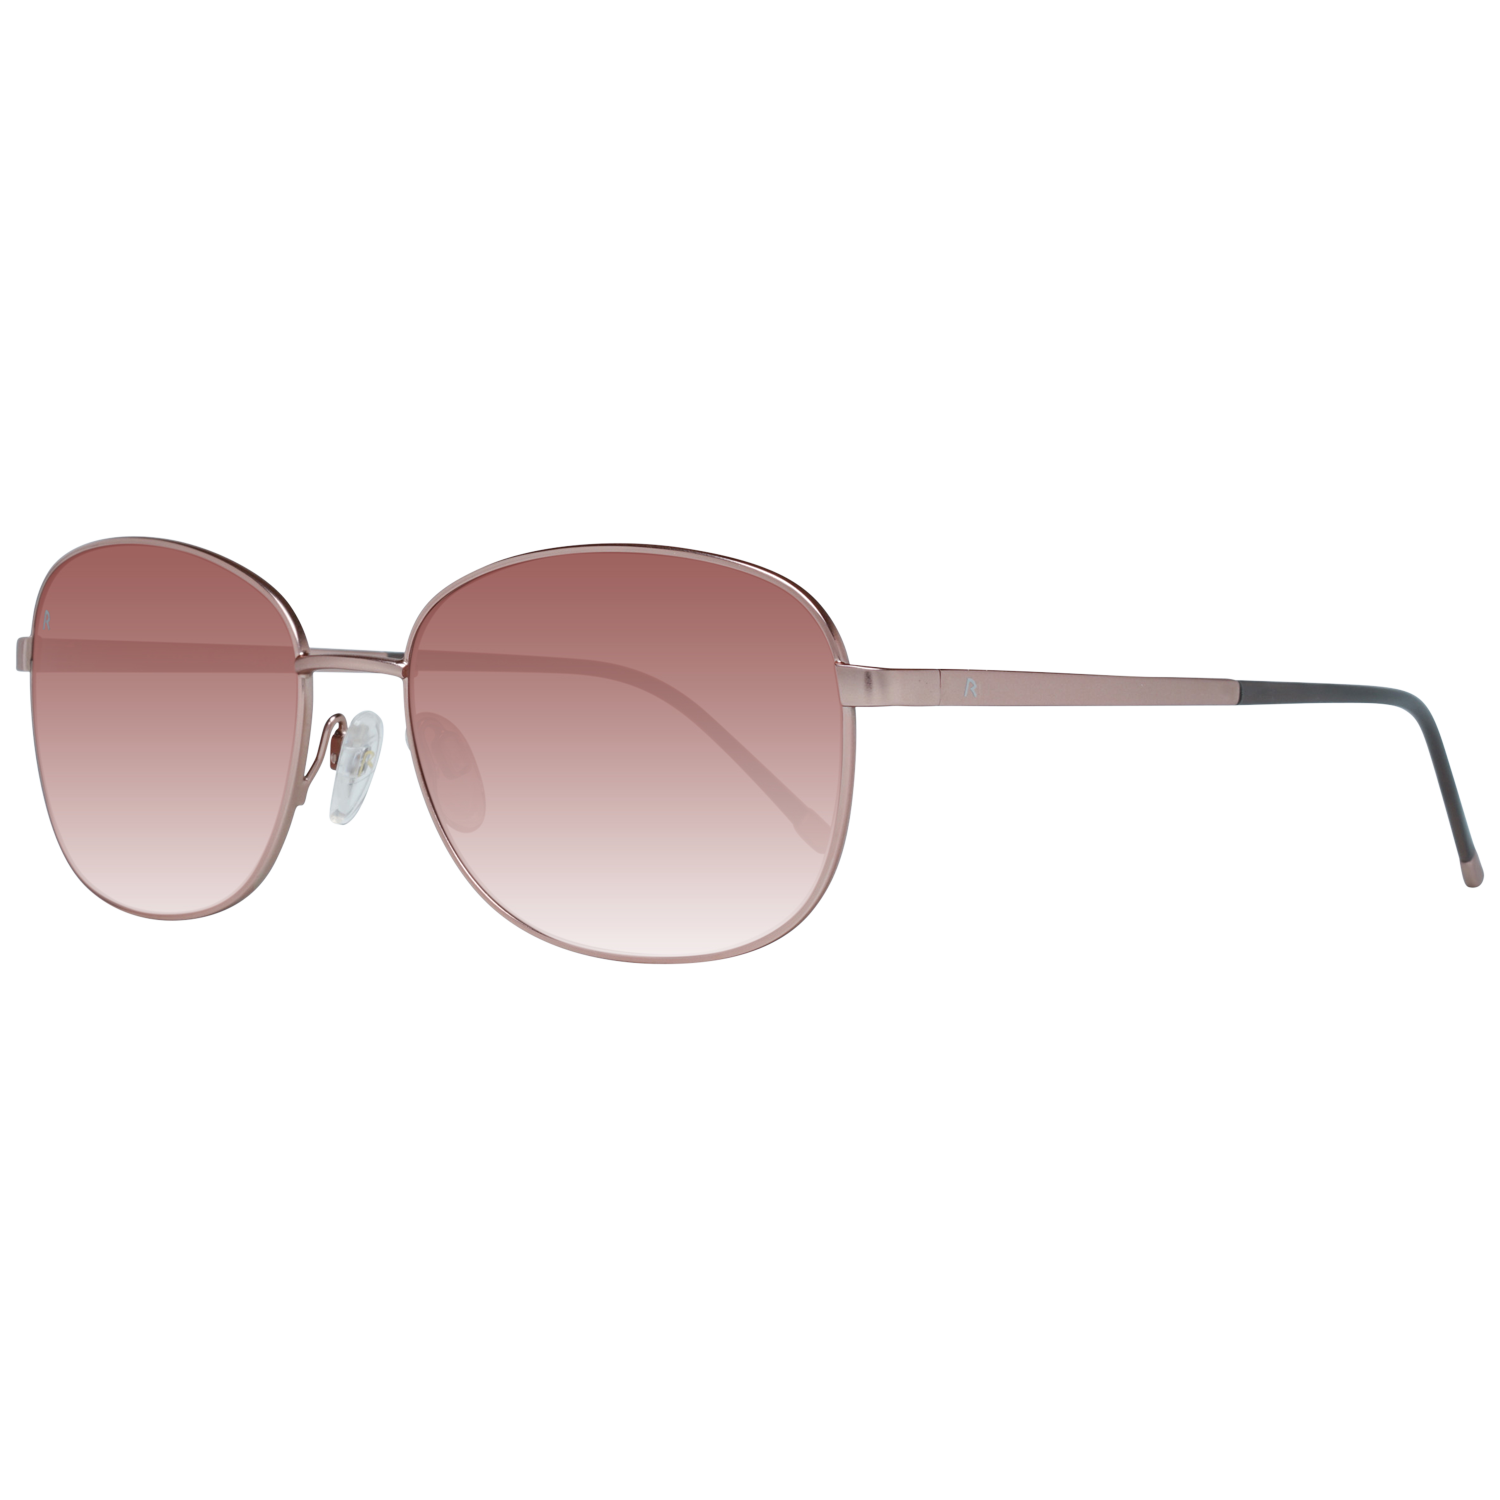 Rodenstock Sunglasses R7410 C 57 Rose Gold